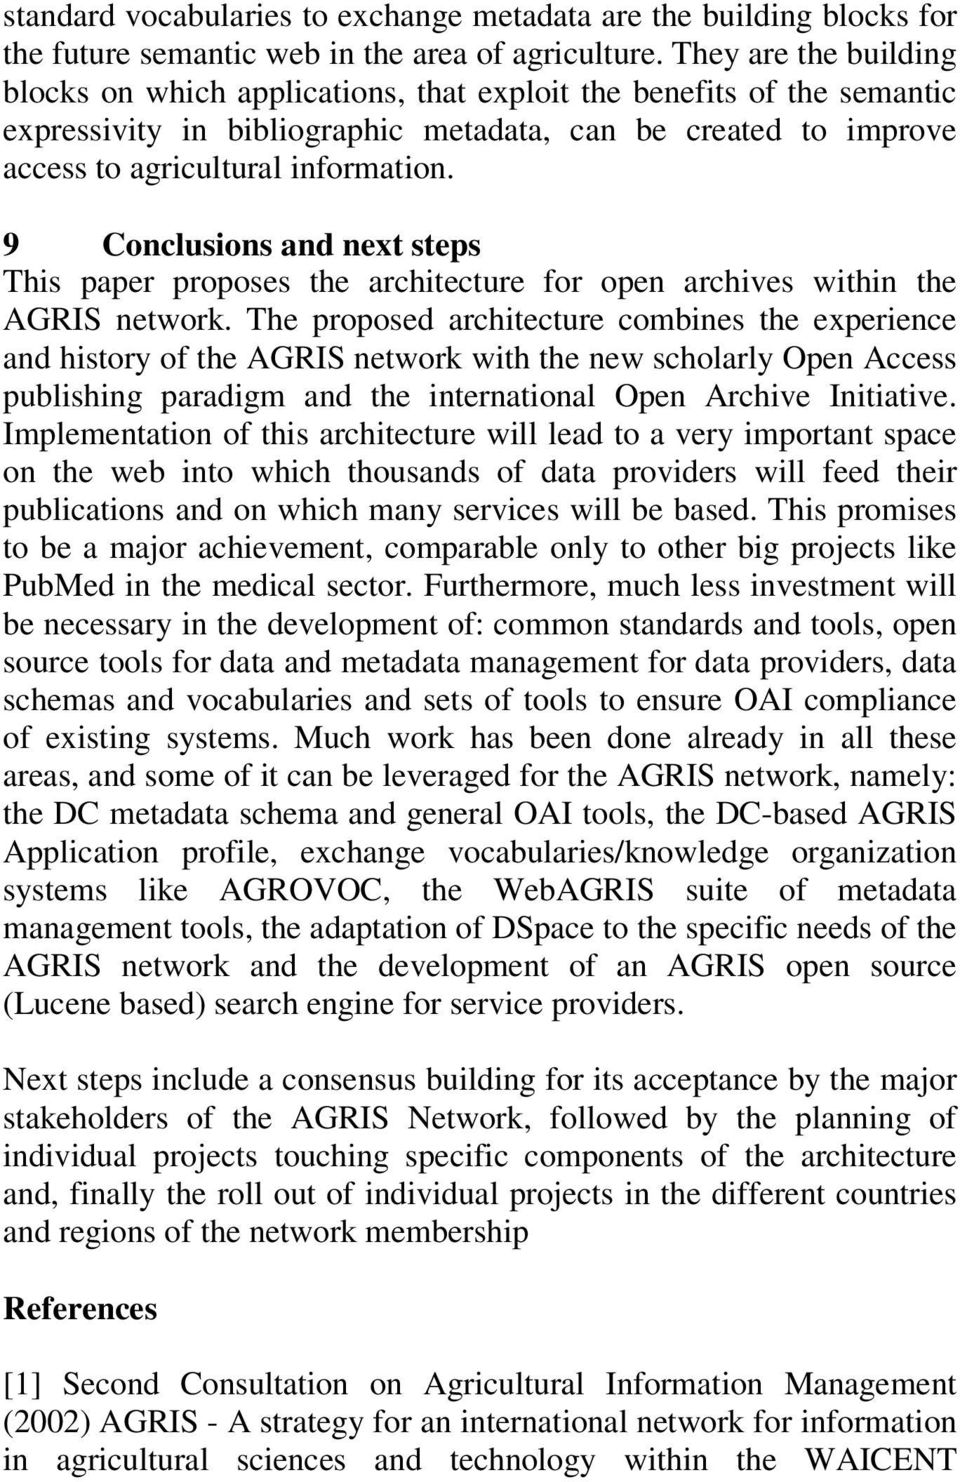 9 Conclusions and next steps This paper proposes the architecture for open archives within the AGRIS network.